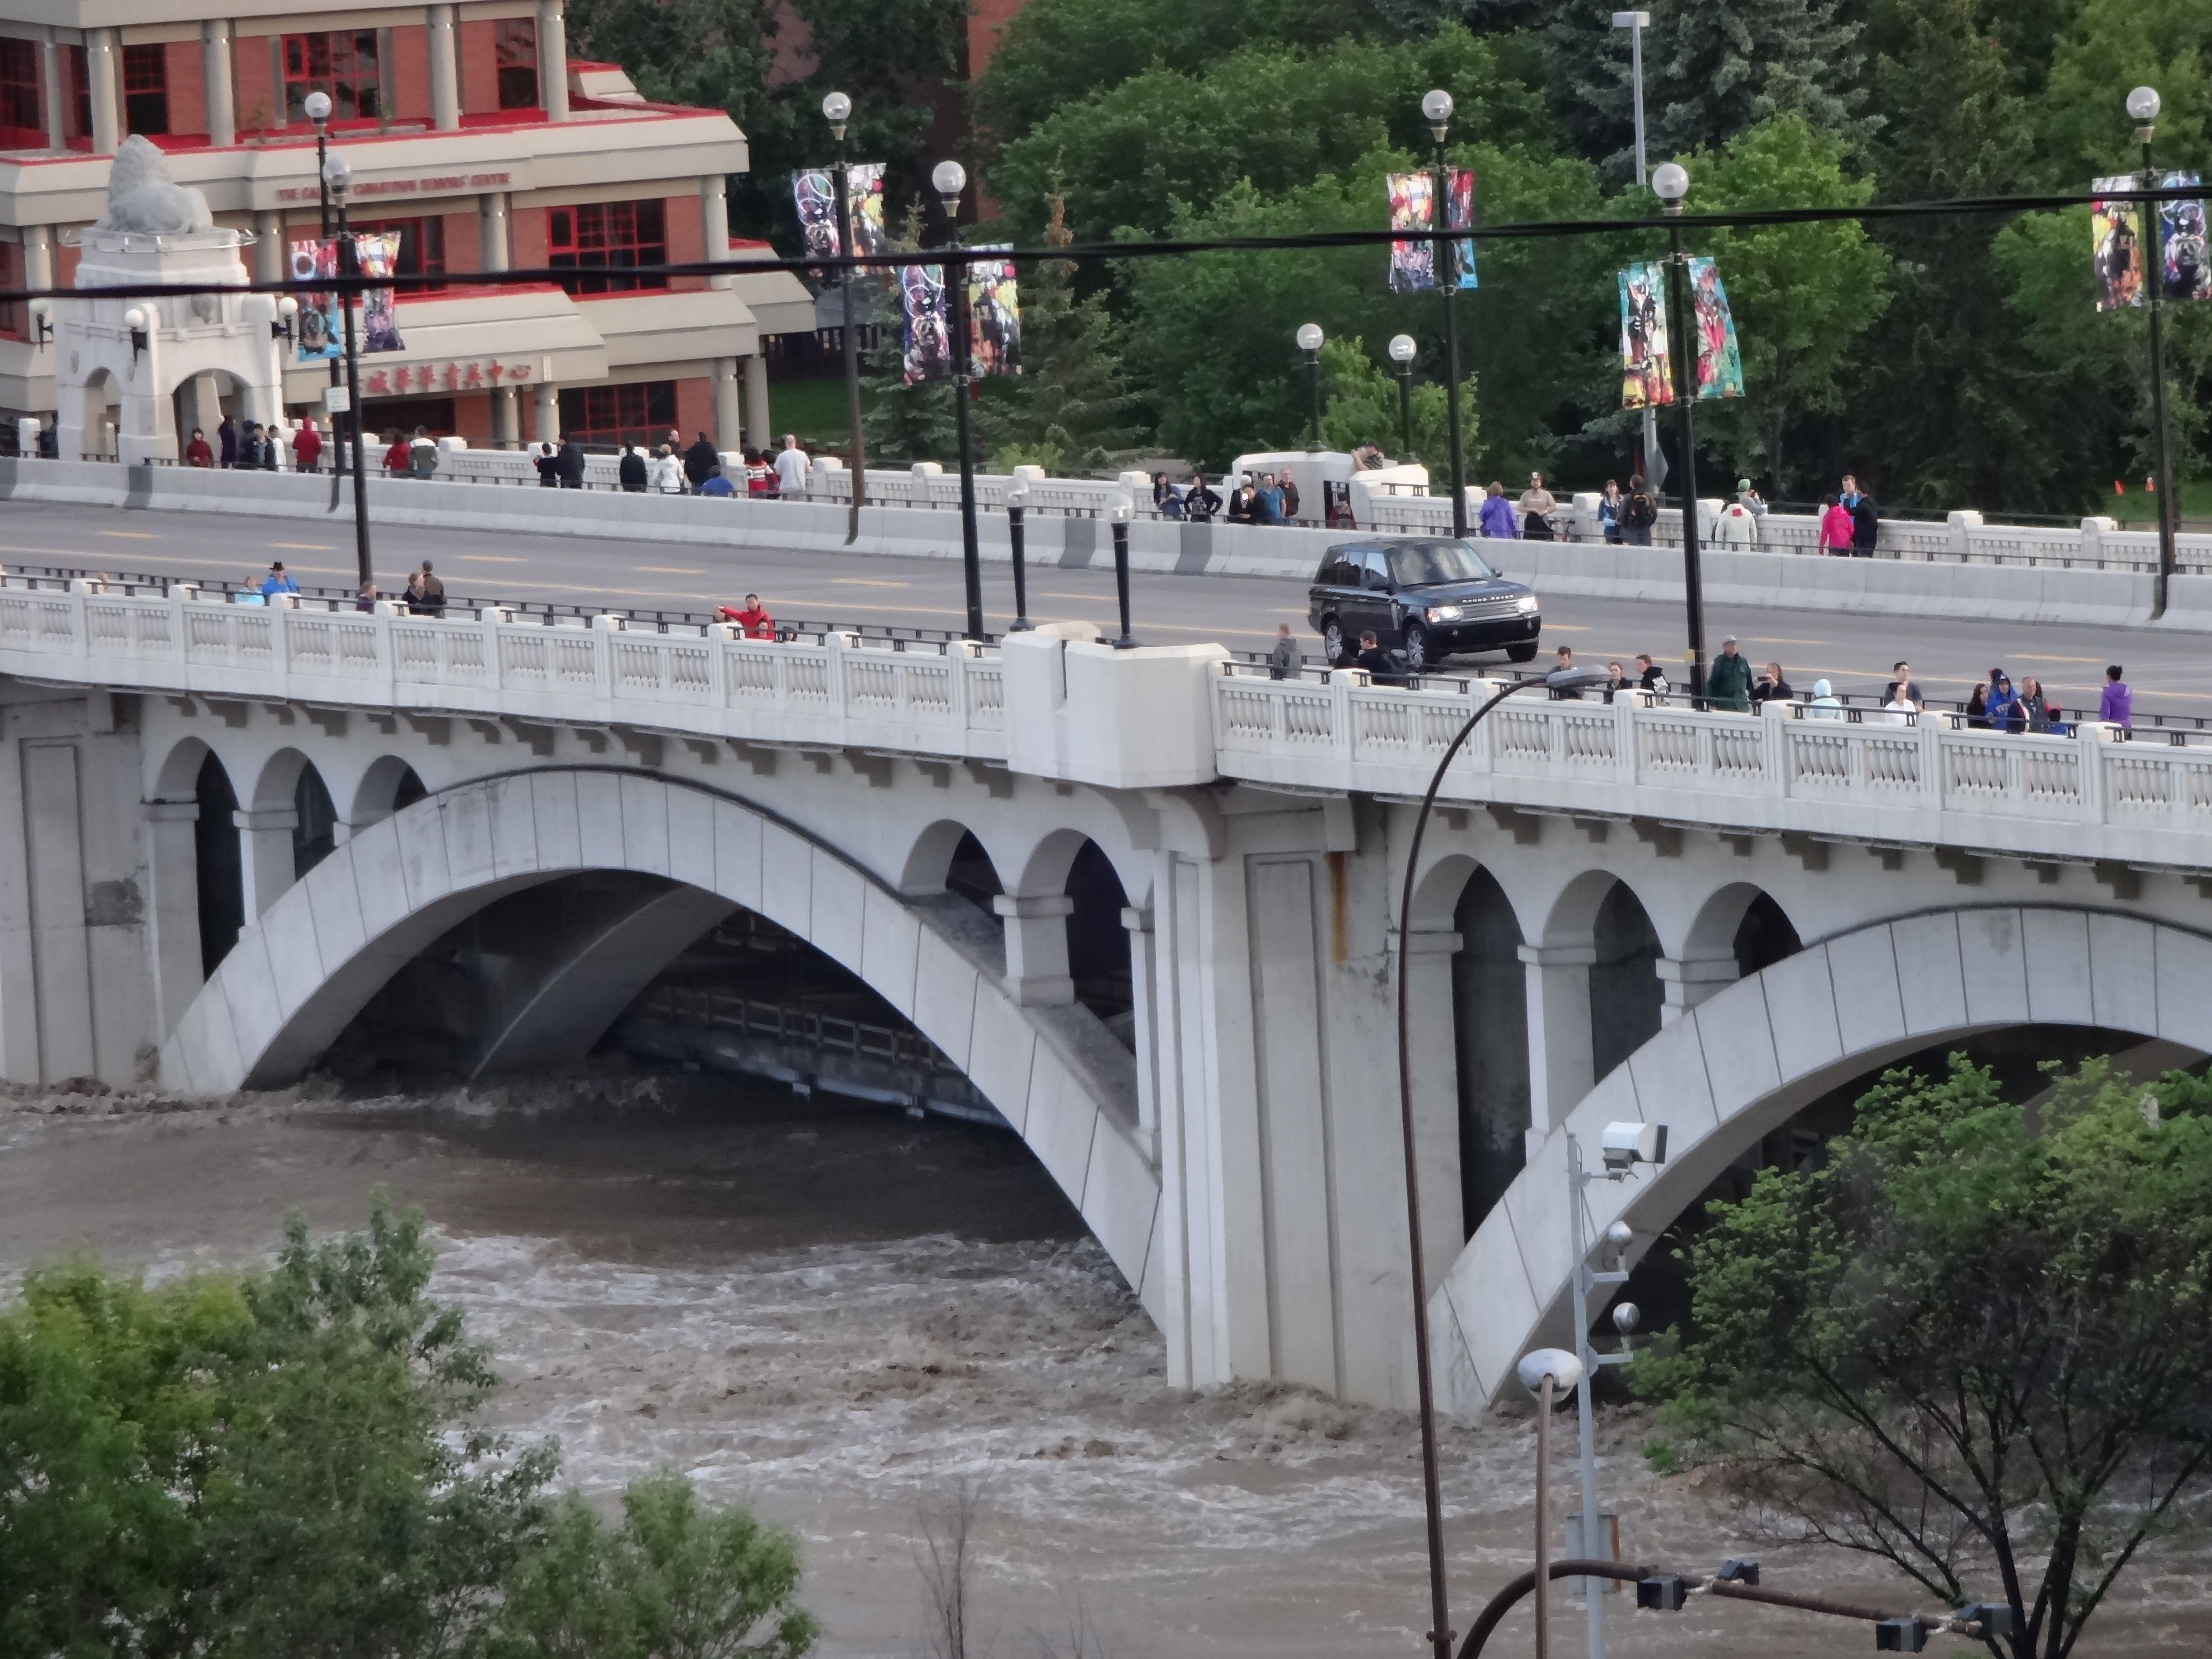 Flooding of the lower level of Centre Street Bridge and